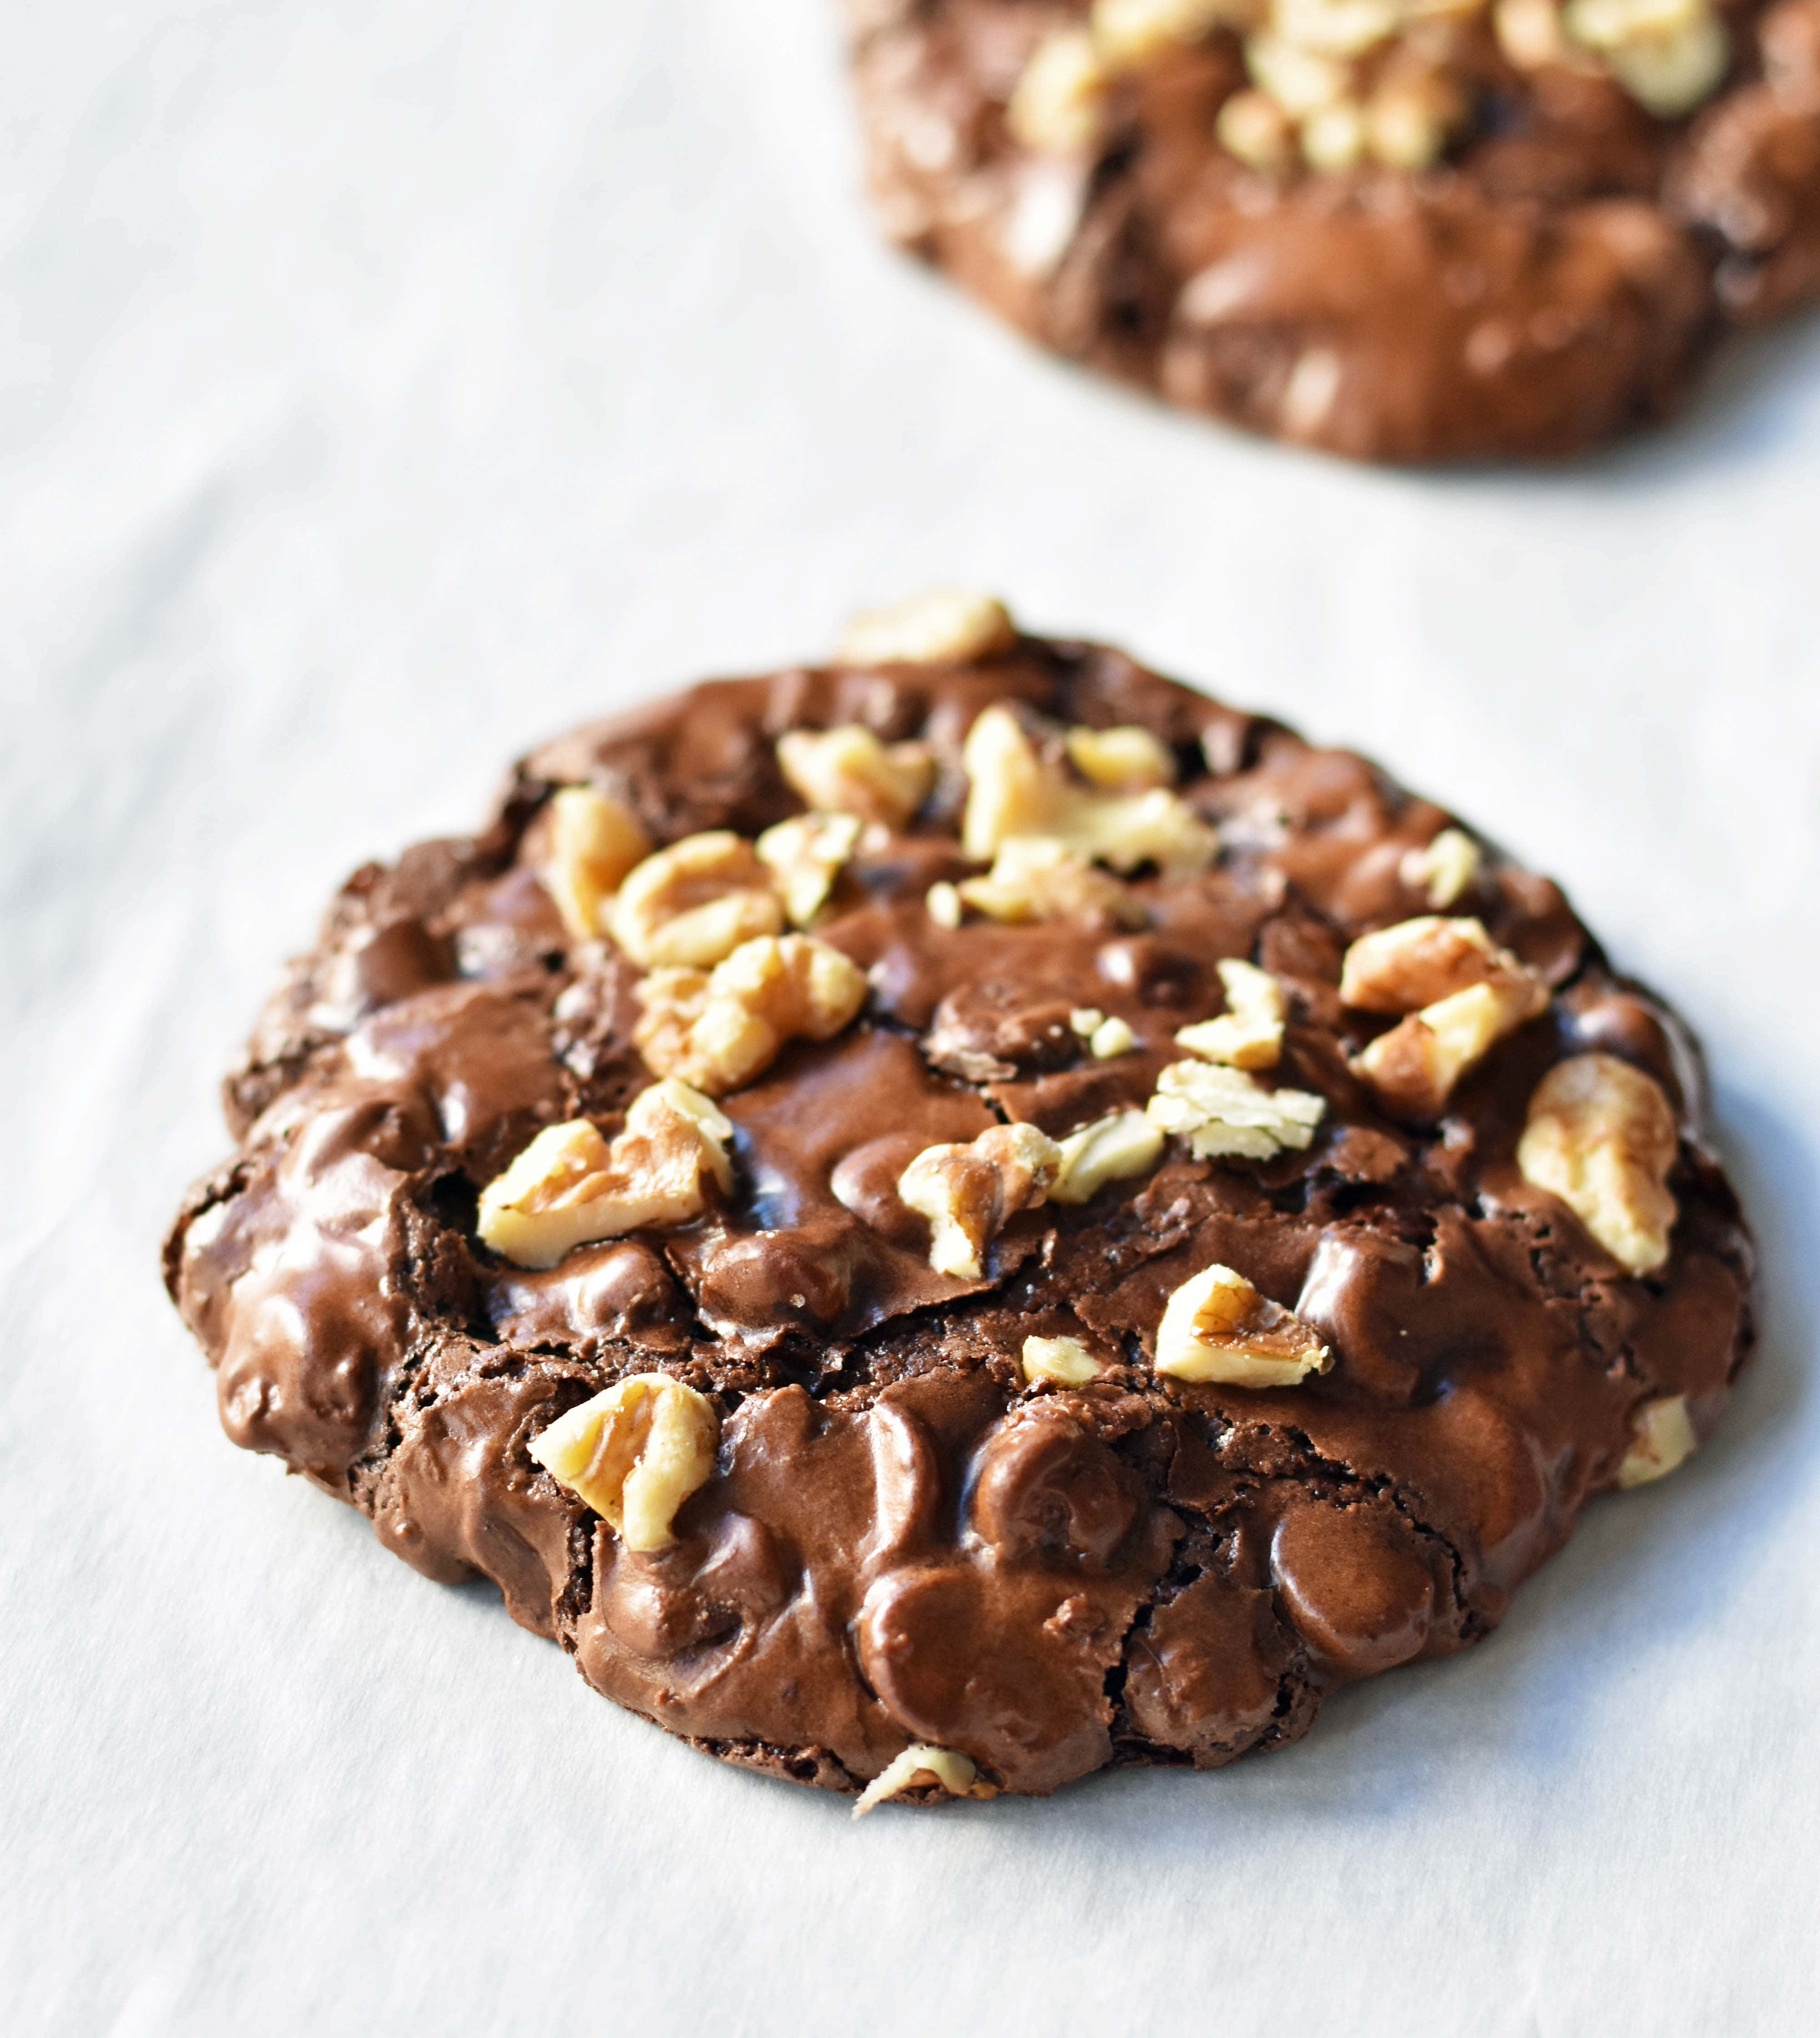 Flourless Chocolate Brownie Gluten Free Cookies are sweet, chewy, crispy, and full of chocolate. If a brownie and a cookie had a baby this would be the result. A fabulous brownie cookie in one! www.modernhoney.com